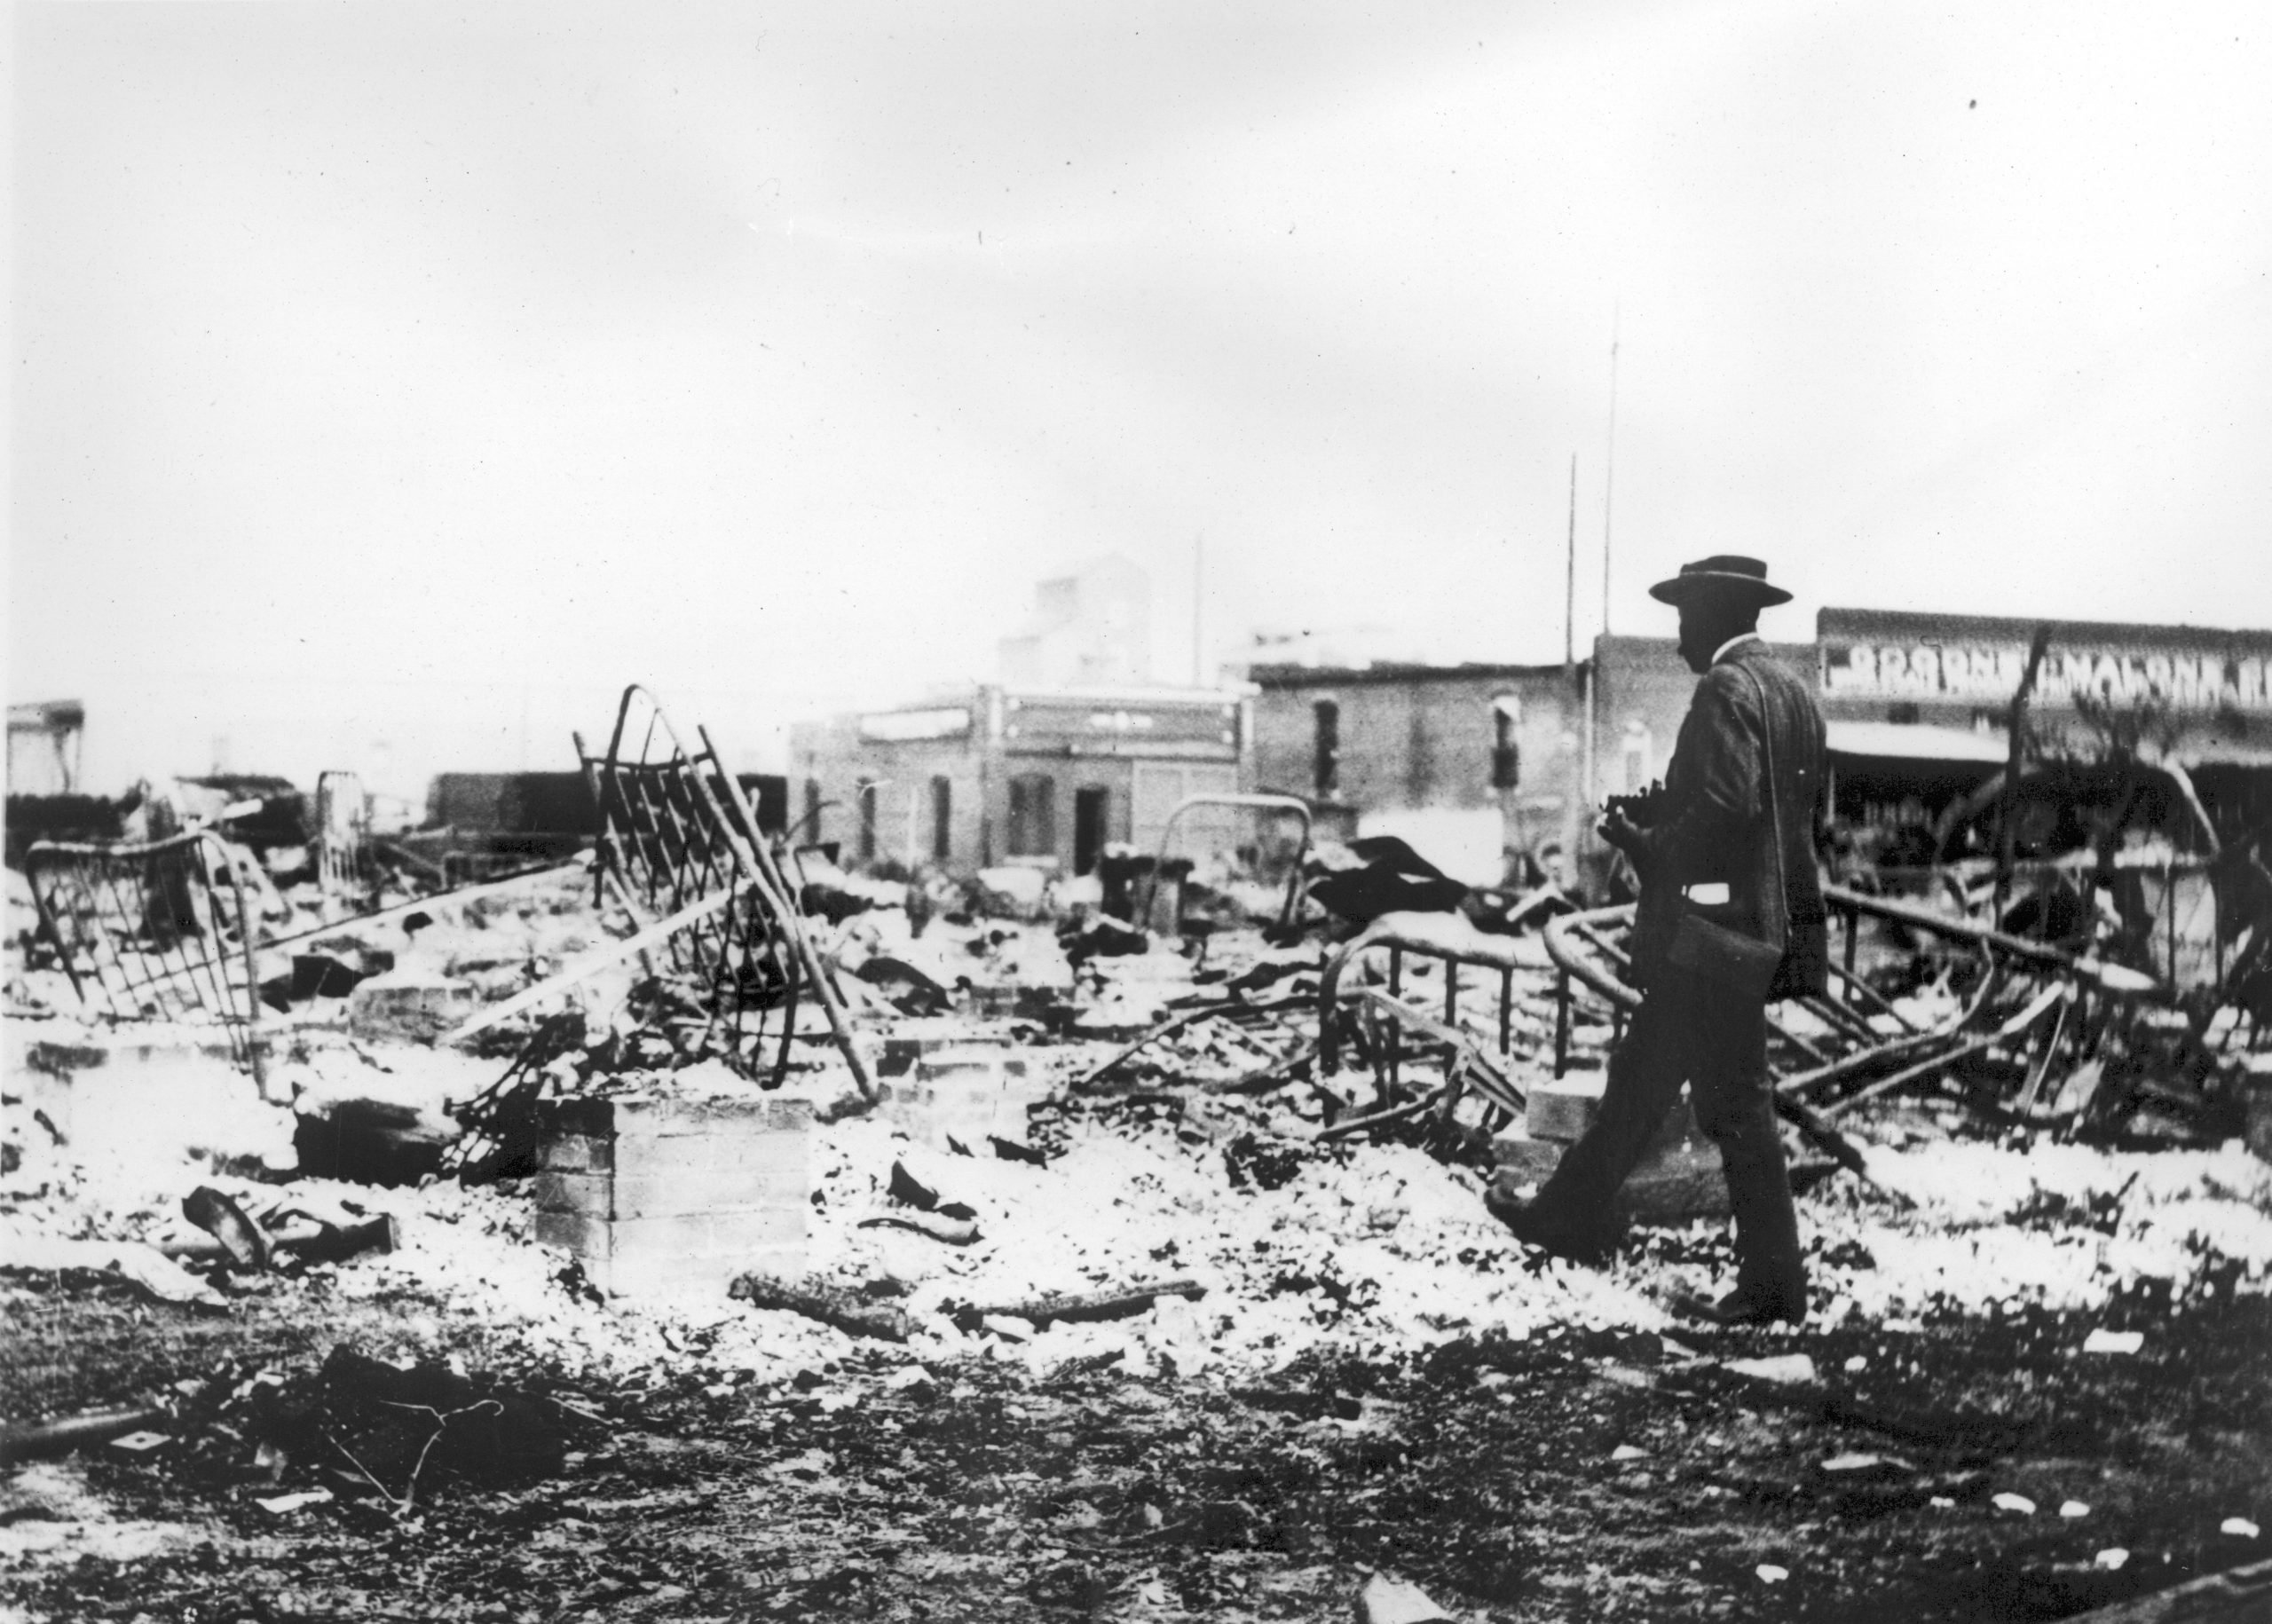 An African-American man with a camera looking at the skeletons of iron beds after the Tulsa Race Massacre